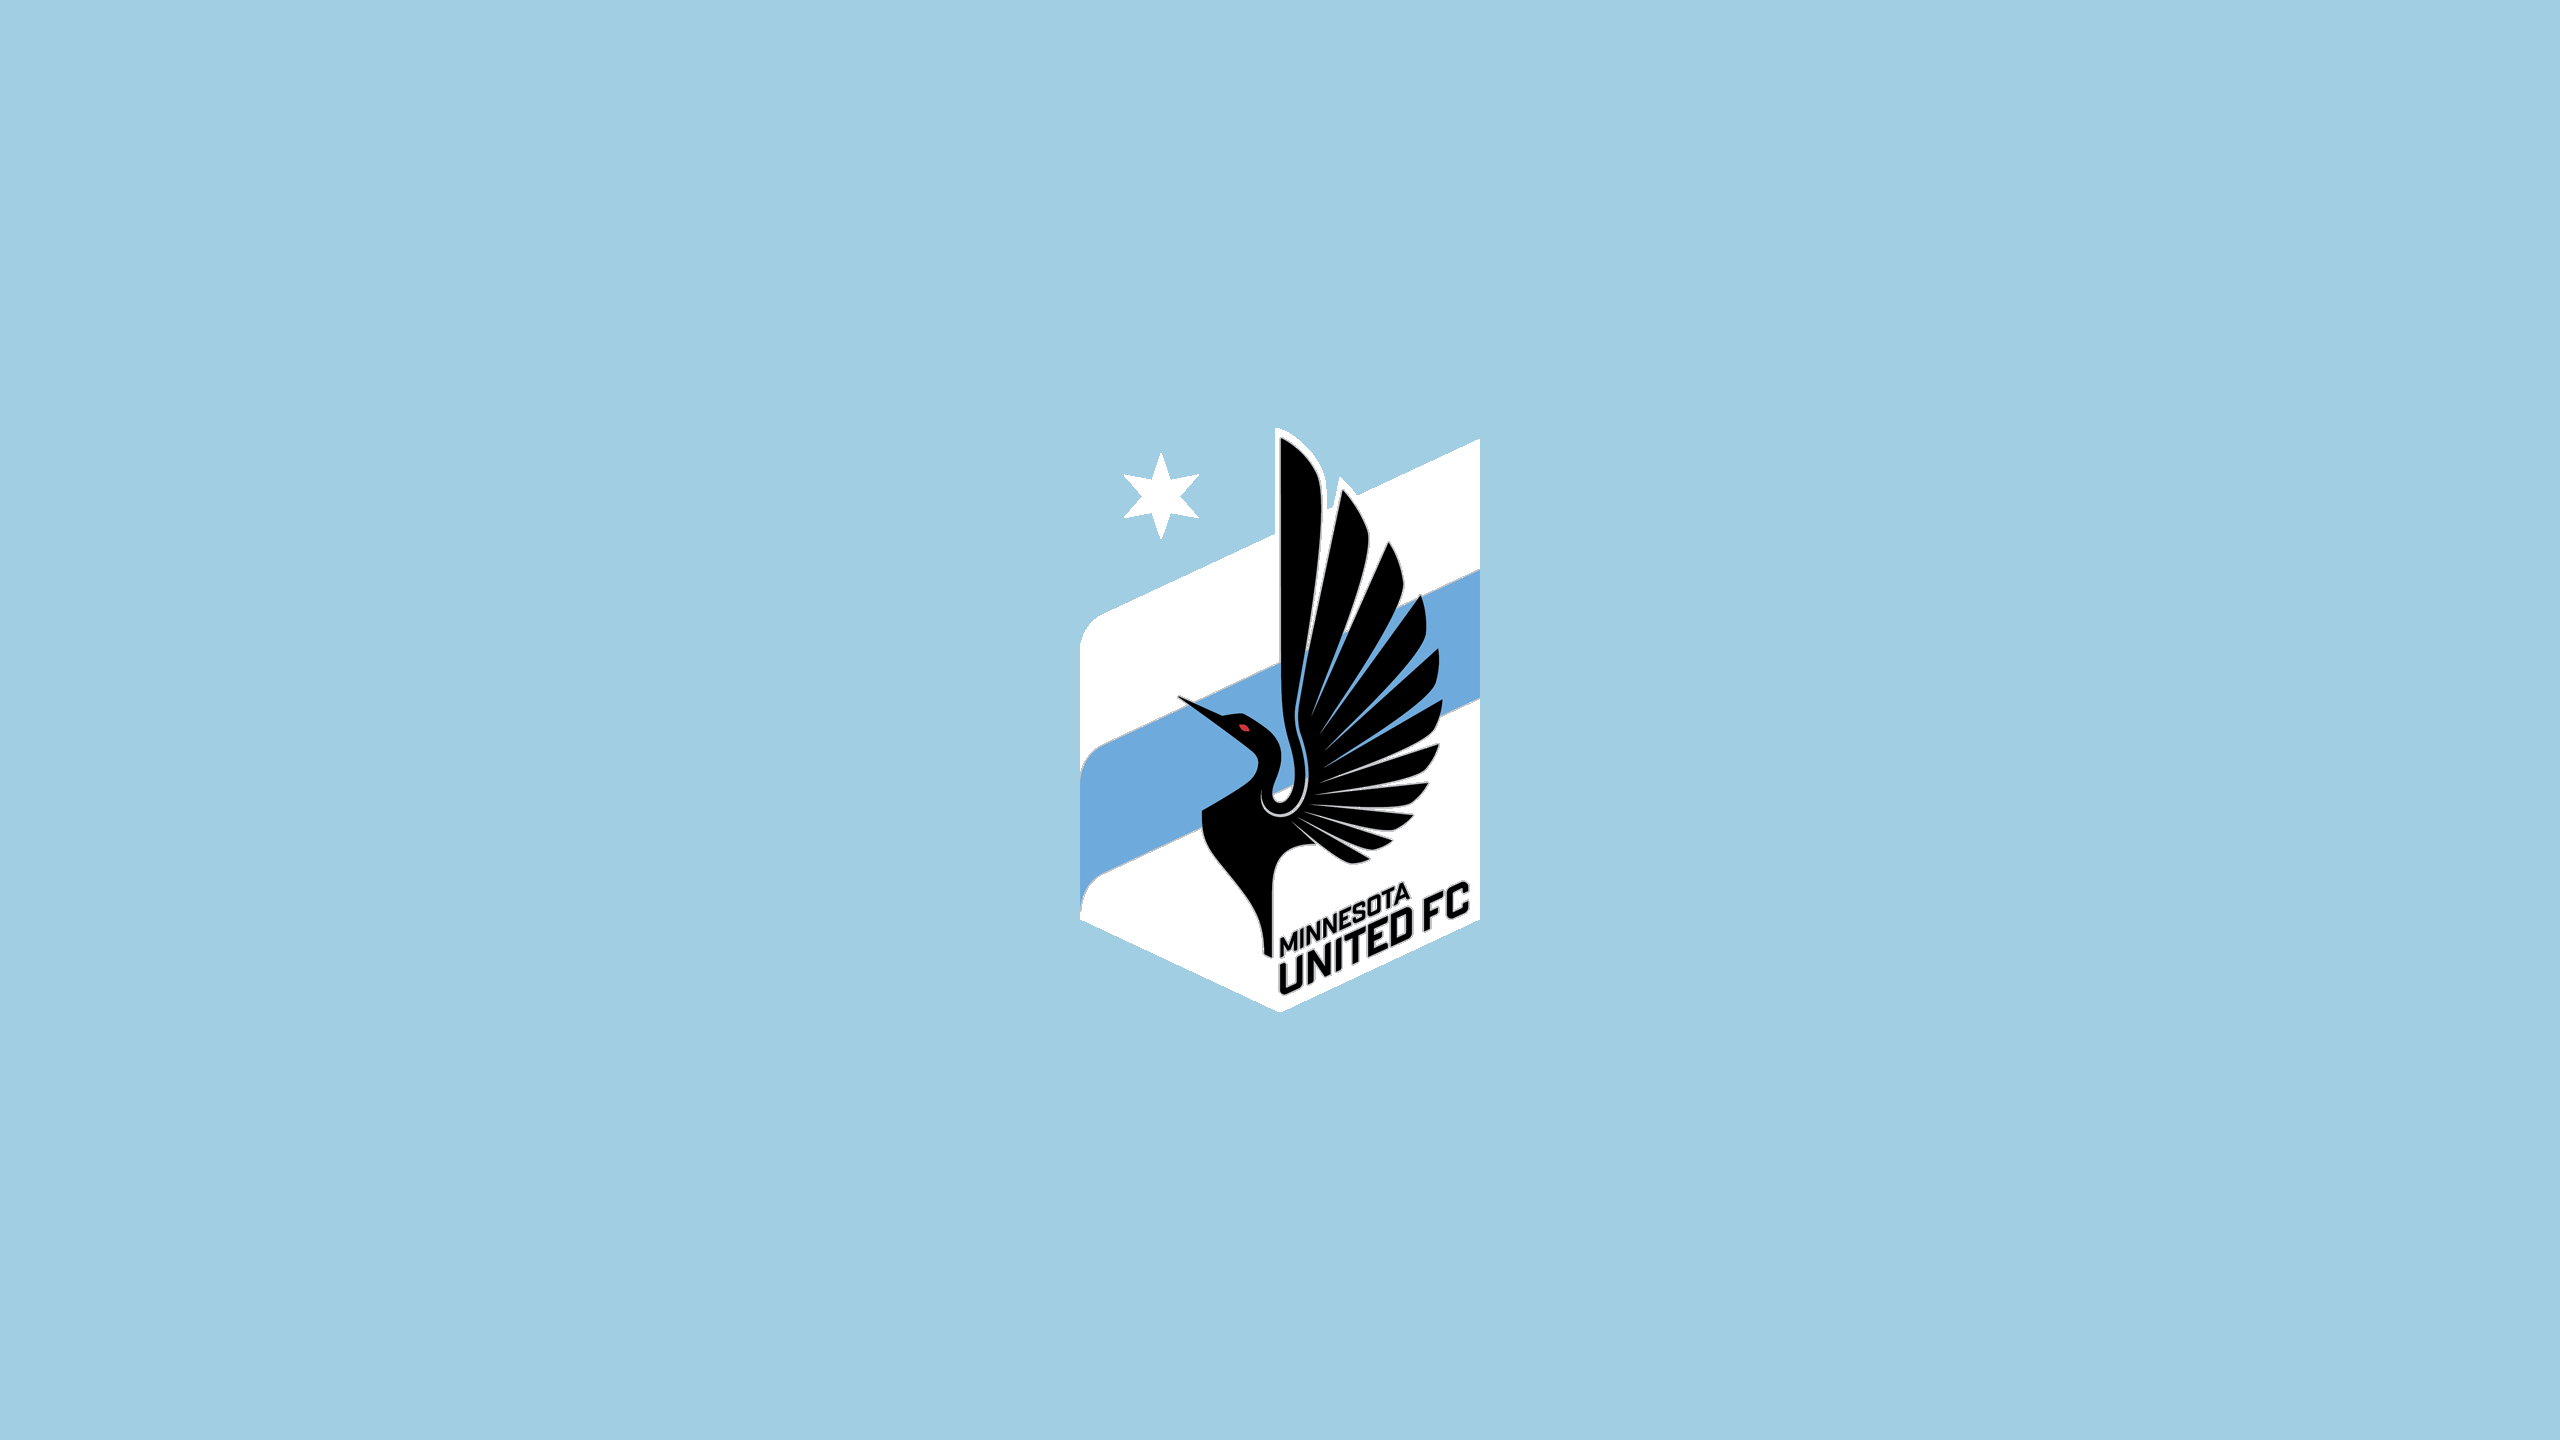 Minnesota United FC (Away)